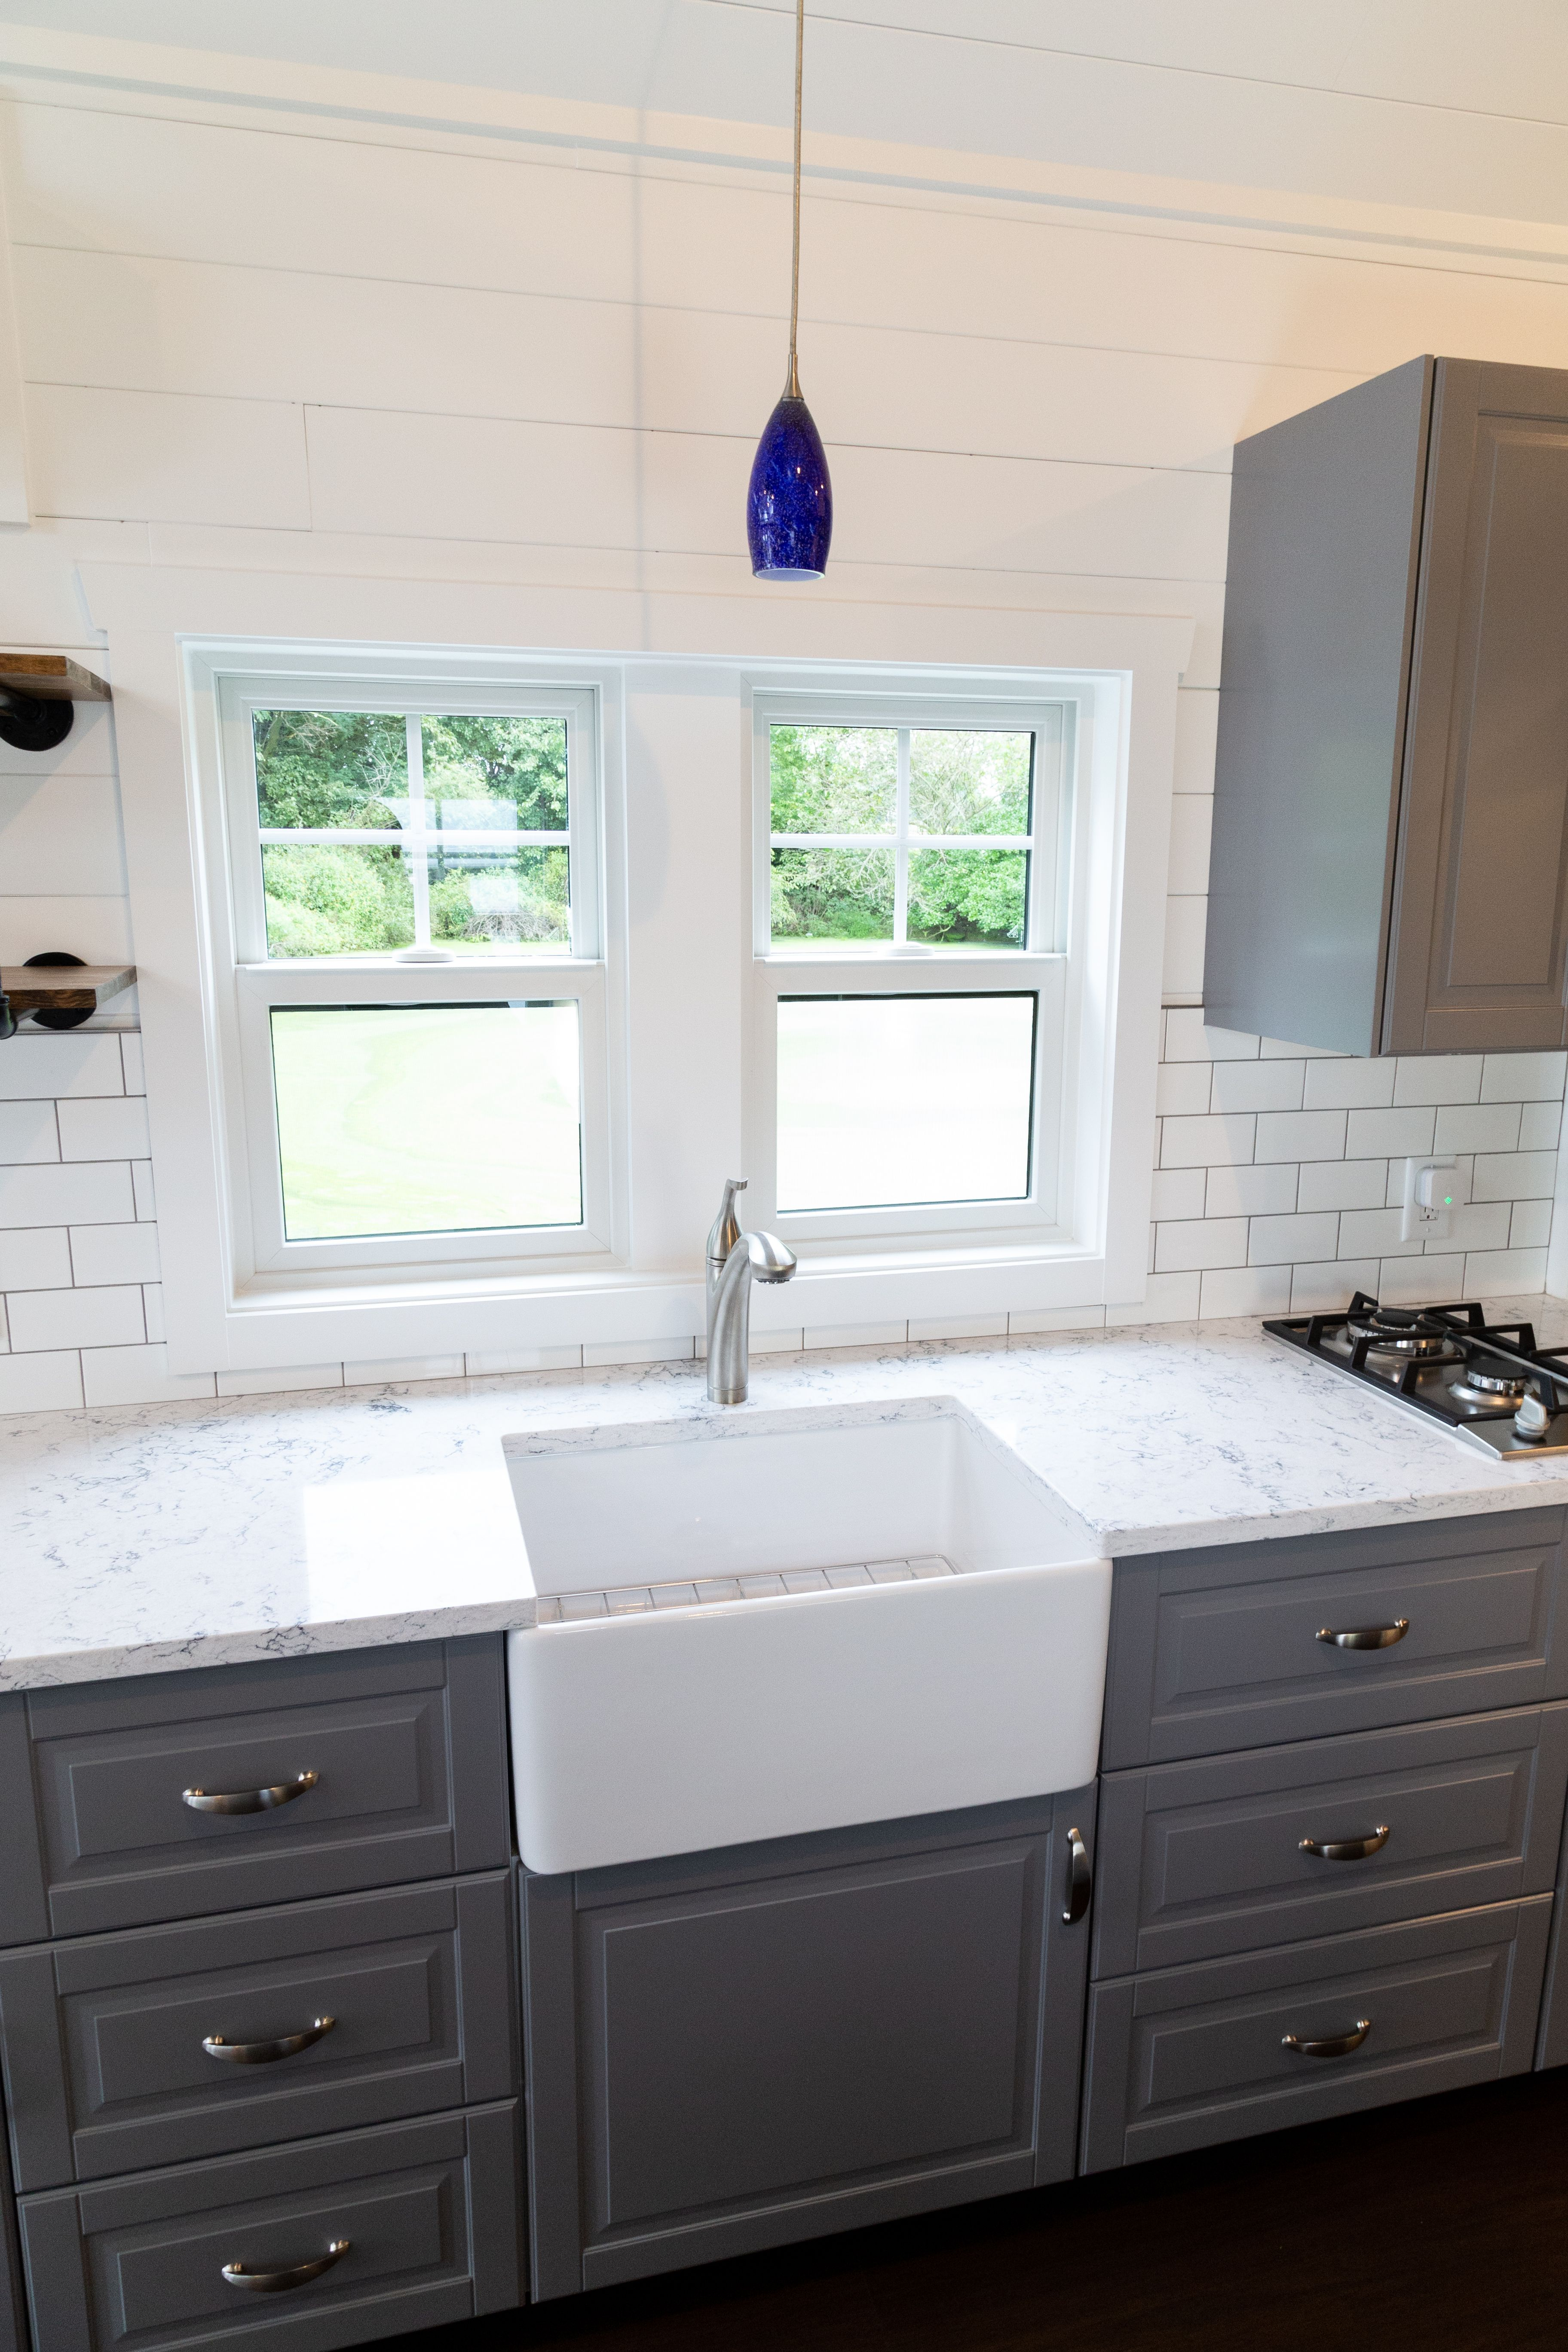 This Farmhouse sink matched well with the IKEA cabinets ...